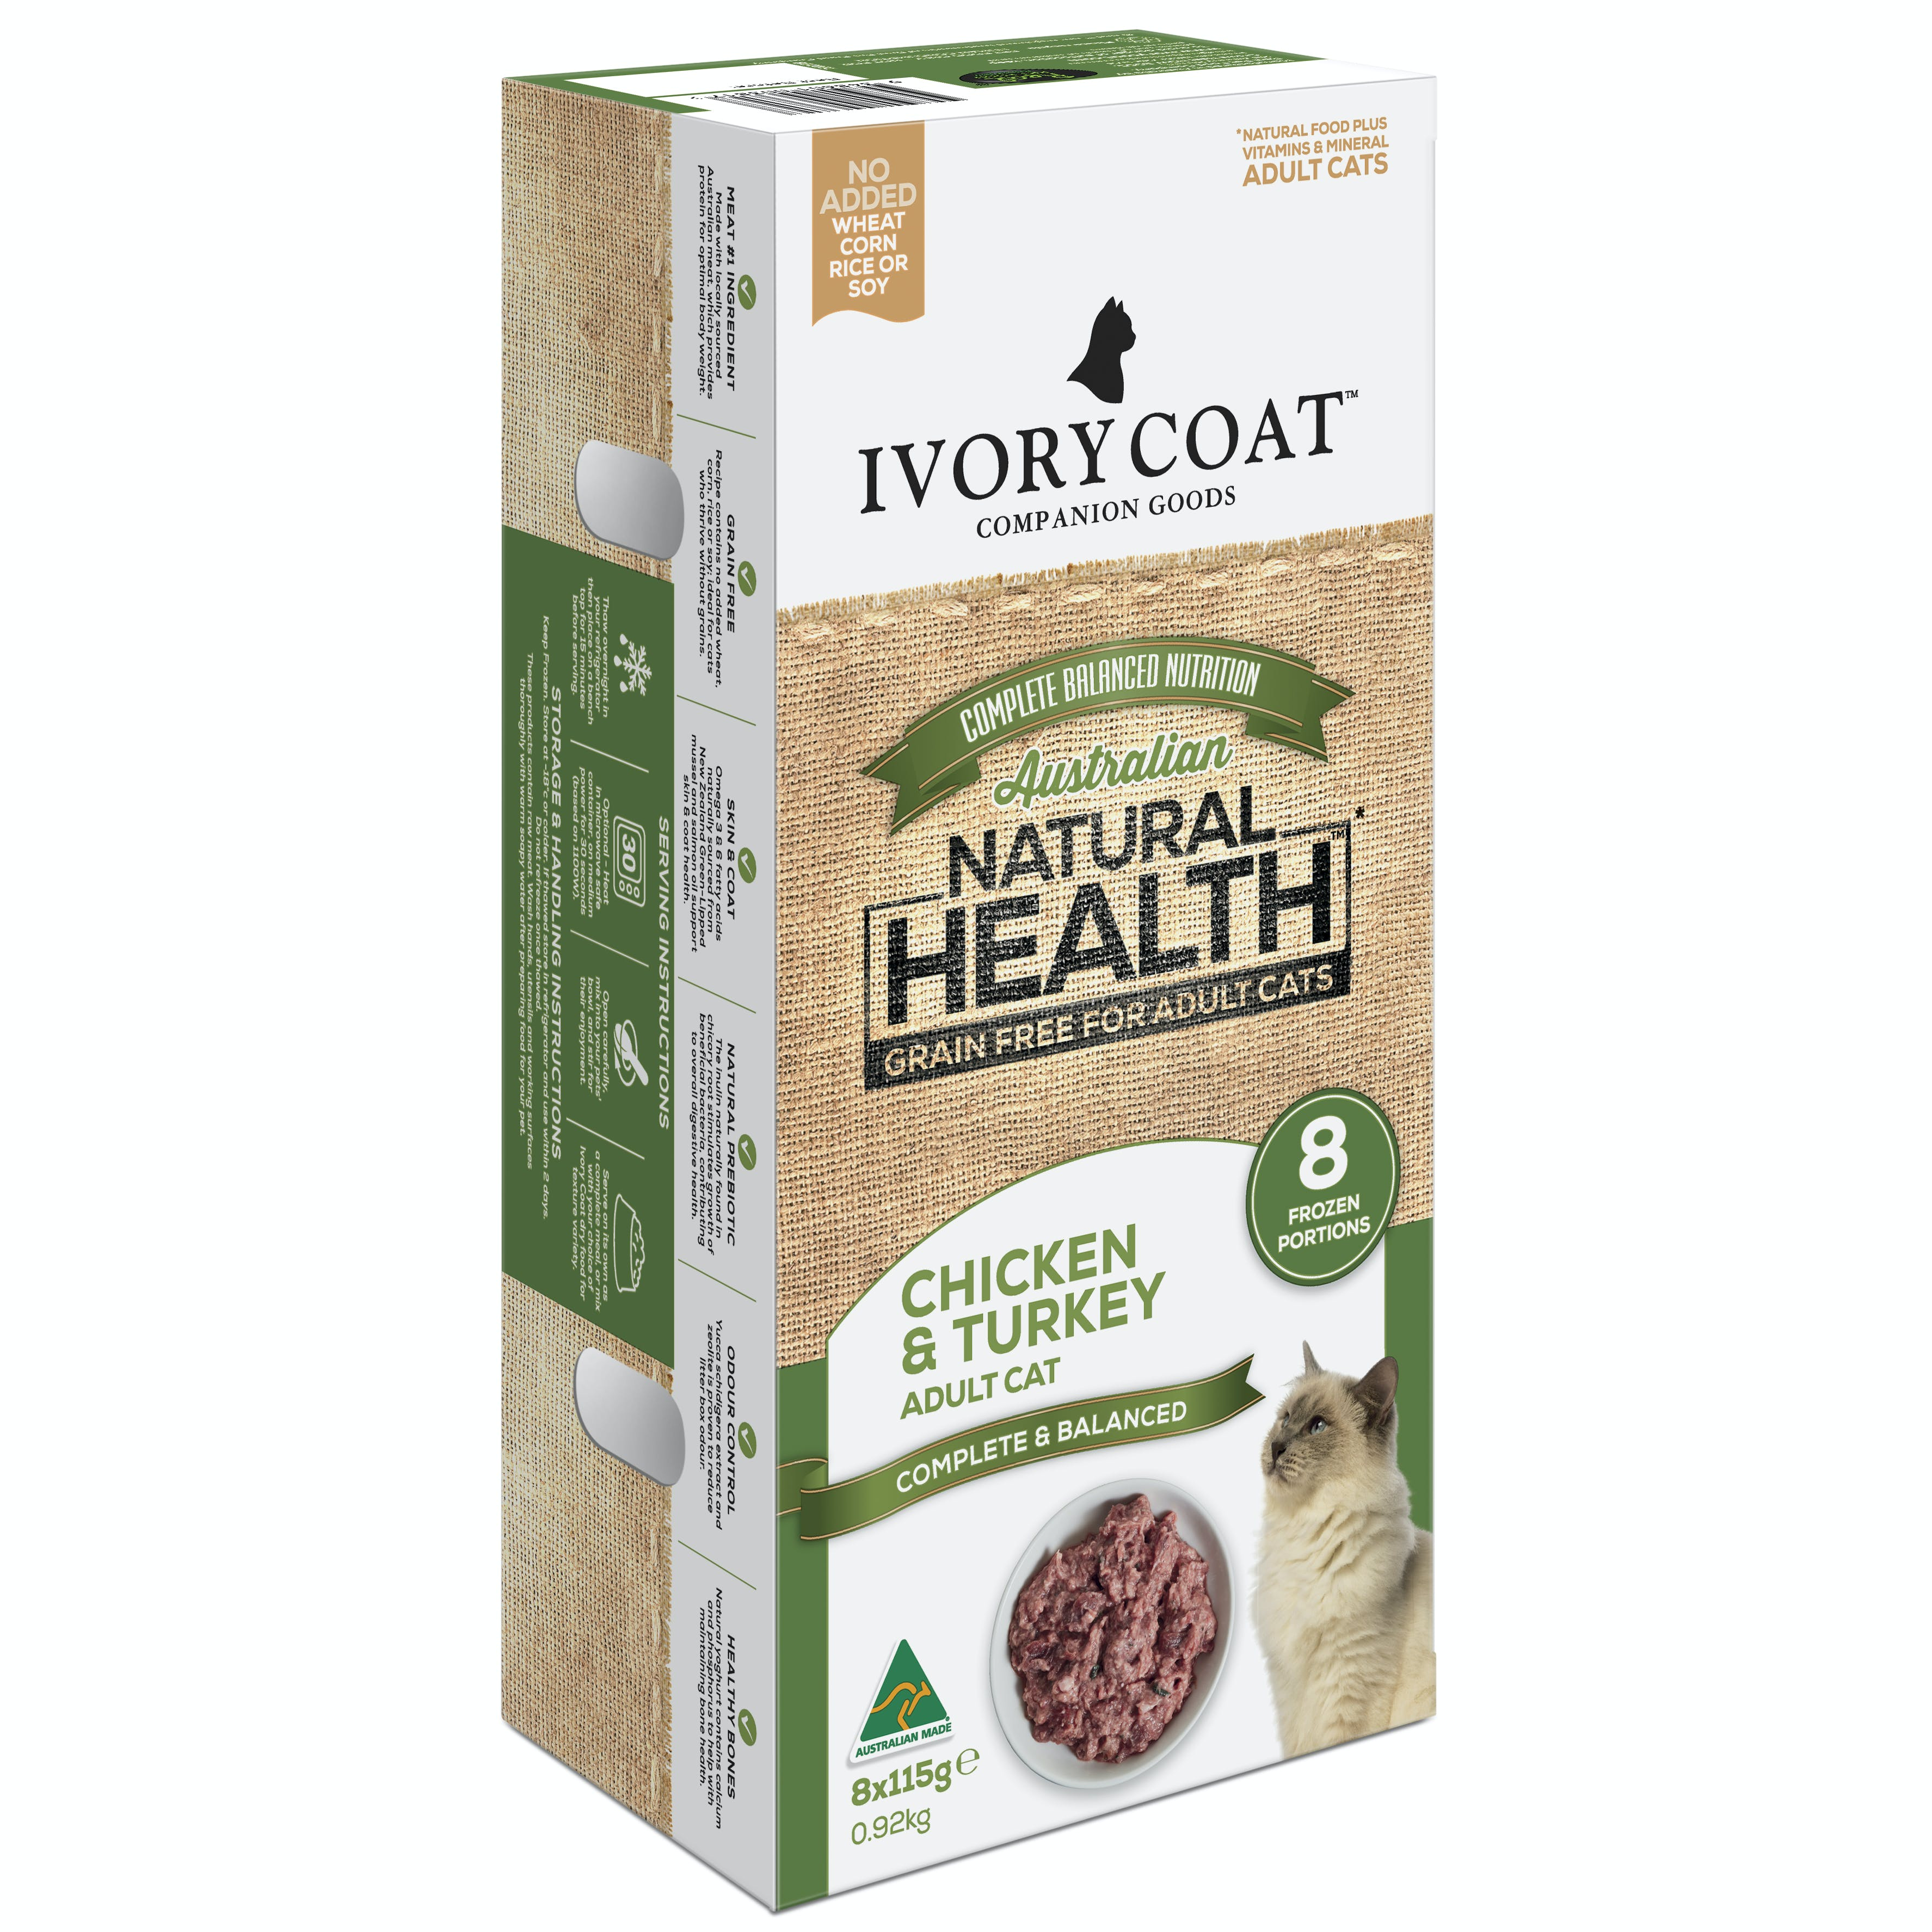 Ivory Coat | Adult Cat Frozen Portions Grain Free Chicken & Turkey 8 x 115g | Grain Free Chilled Cat Food | Front of pack